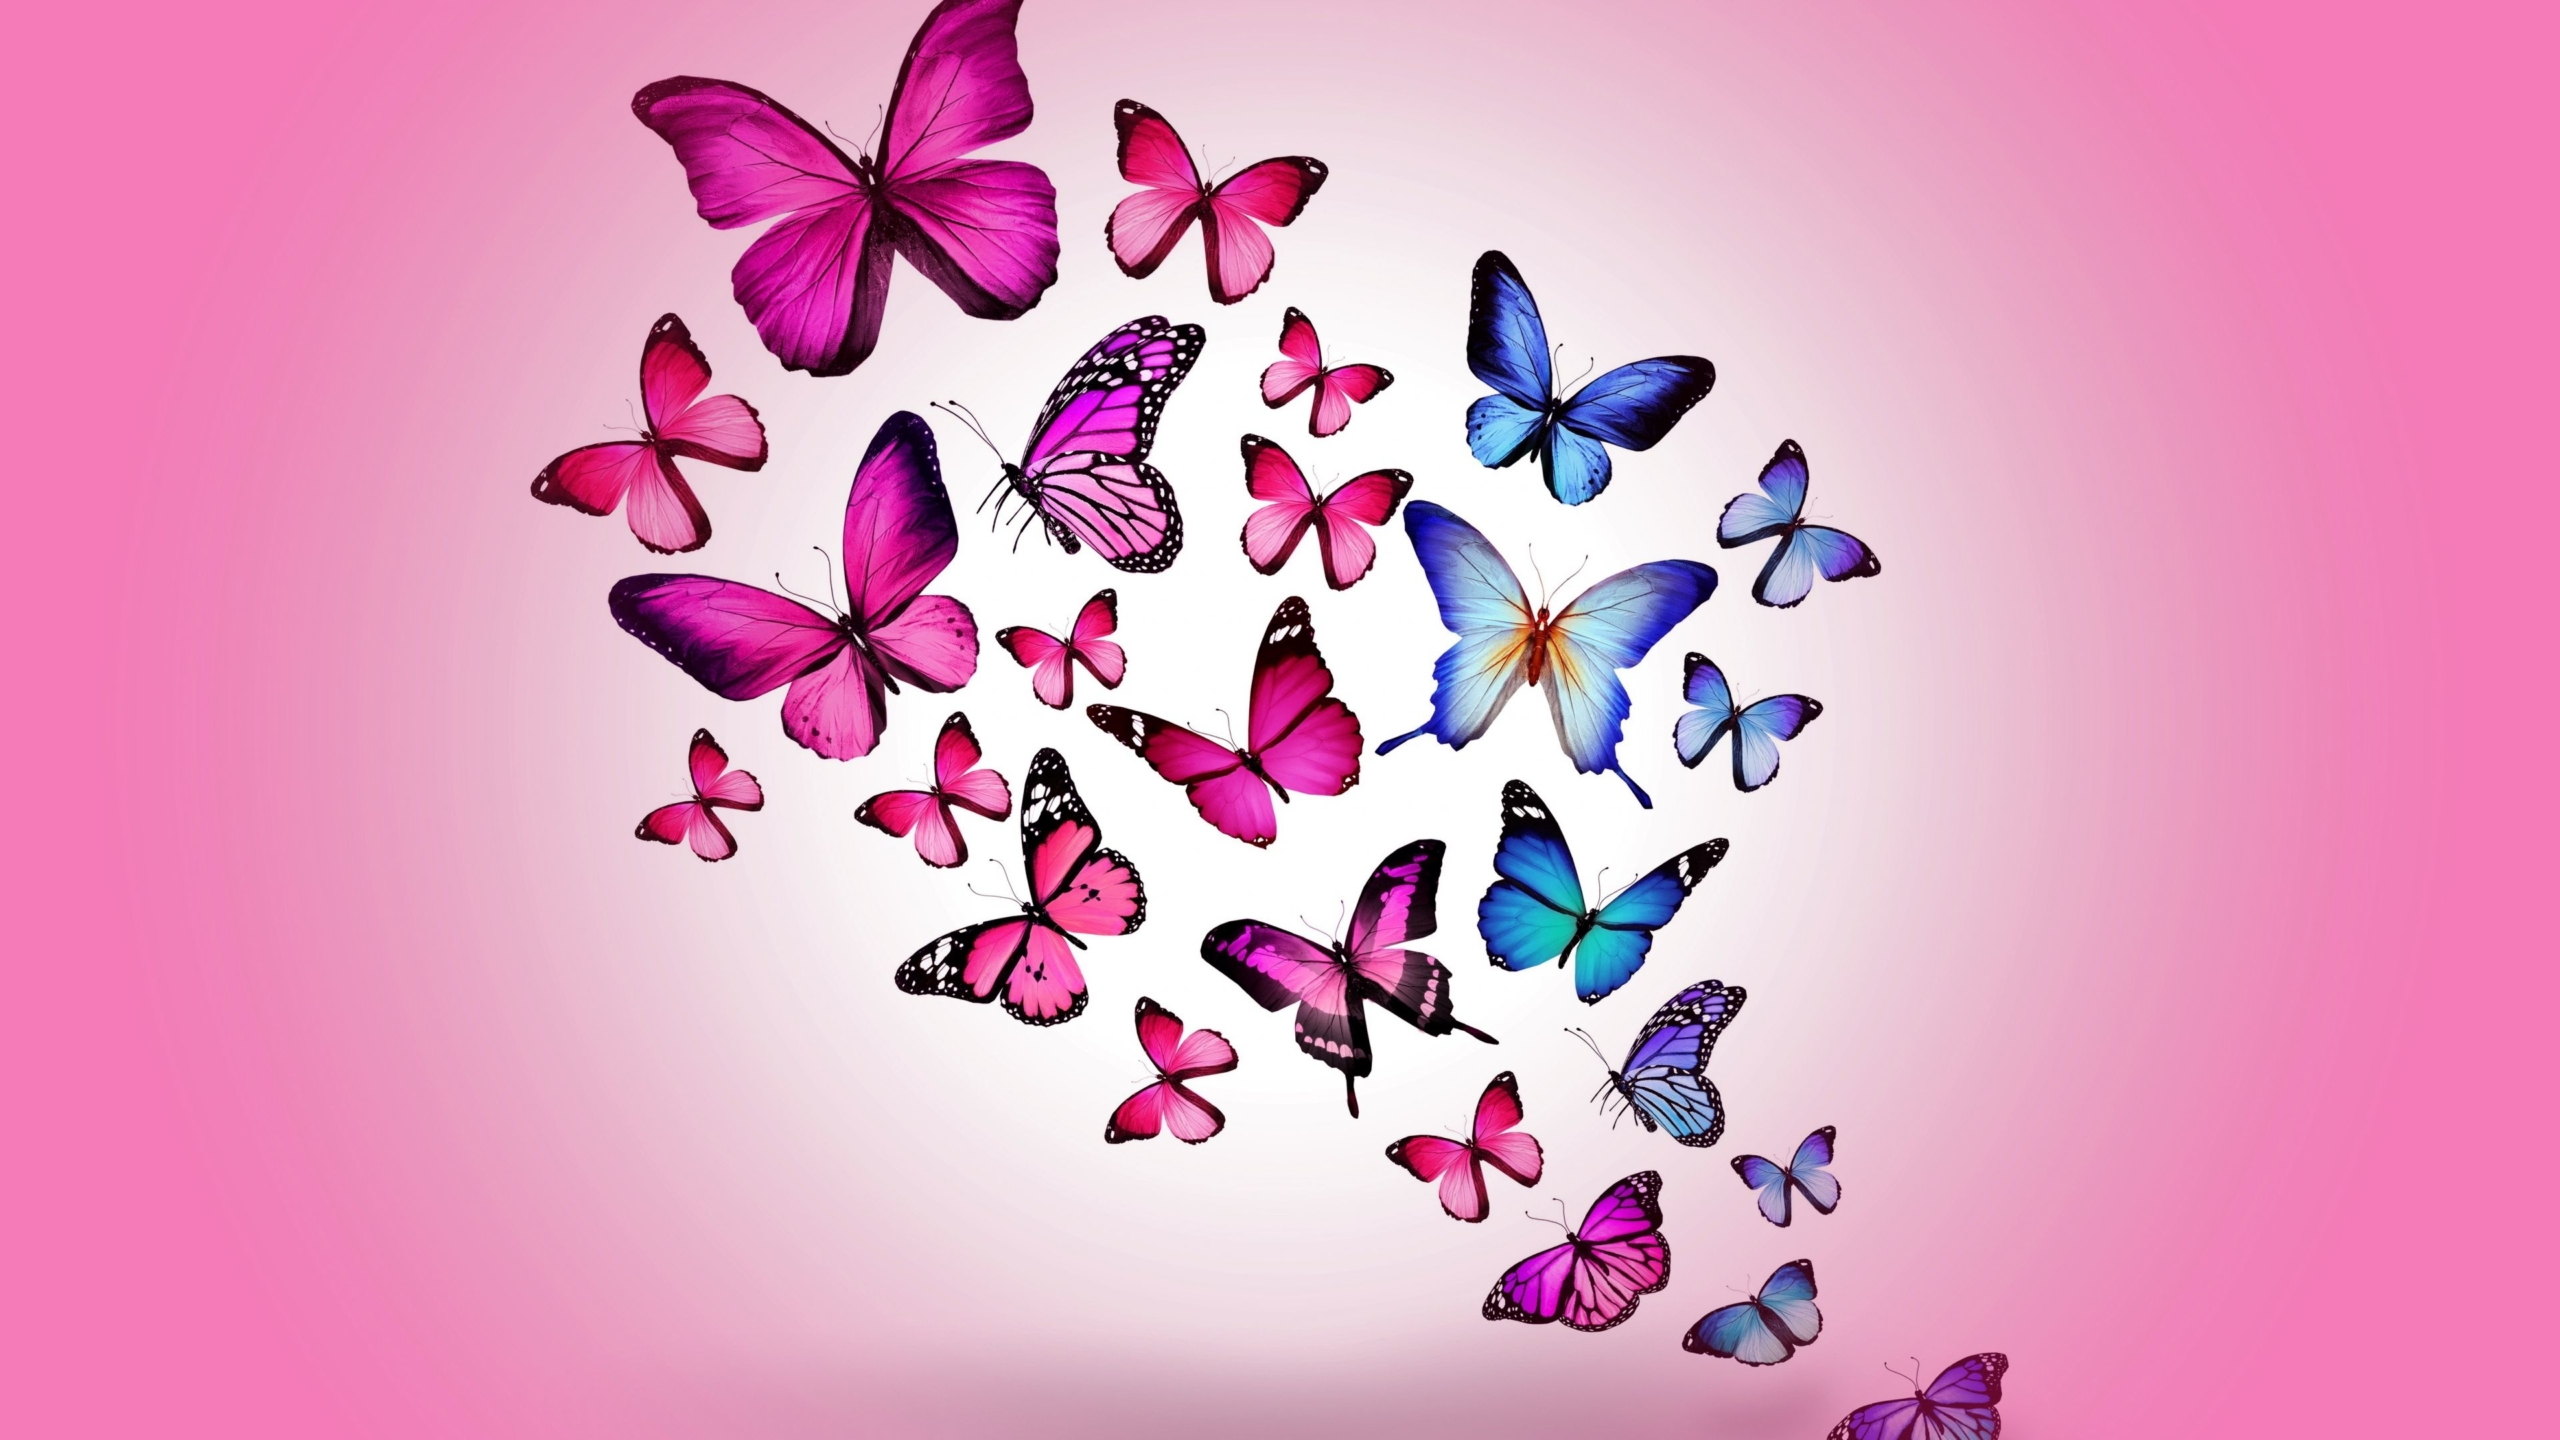 155+ Beautiful Butterfly Wallpaper ideas to consider